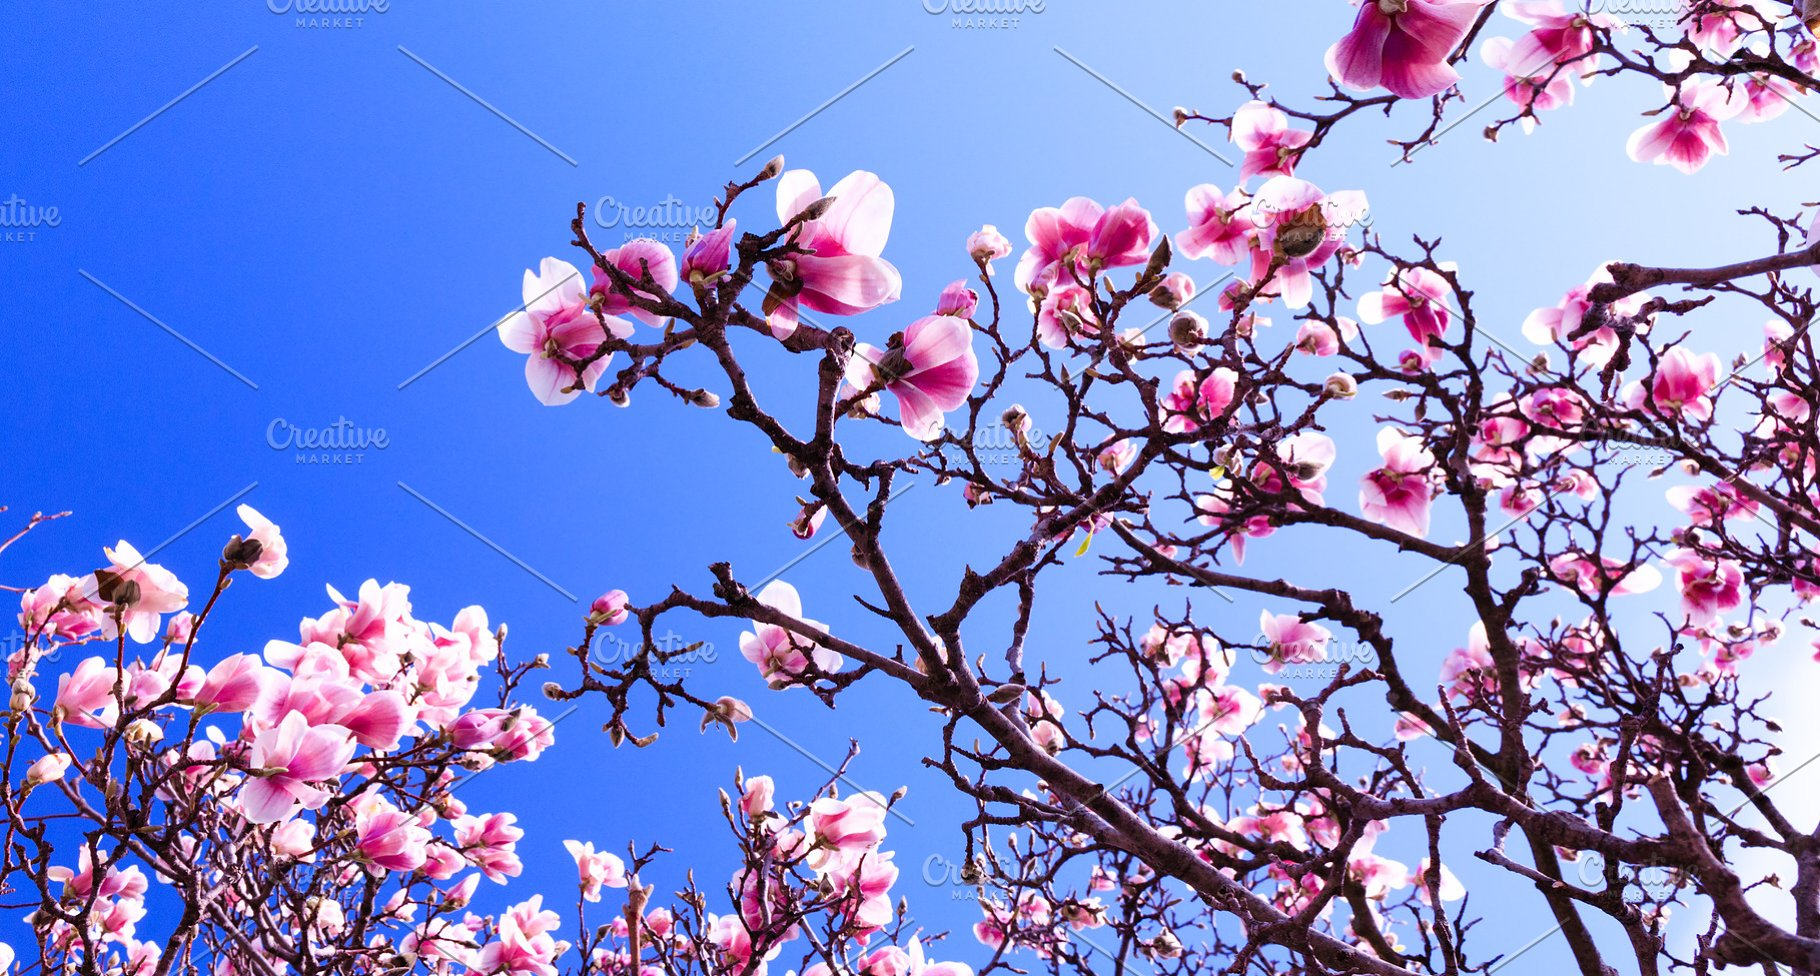 Blooming Magnolia Tree As Background High Quality Nature Stock